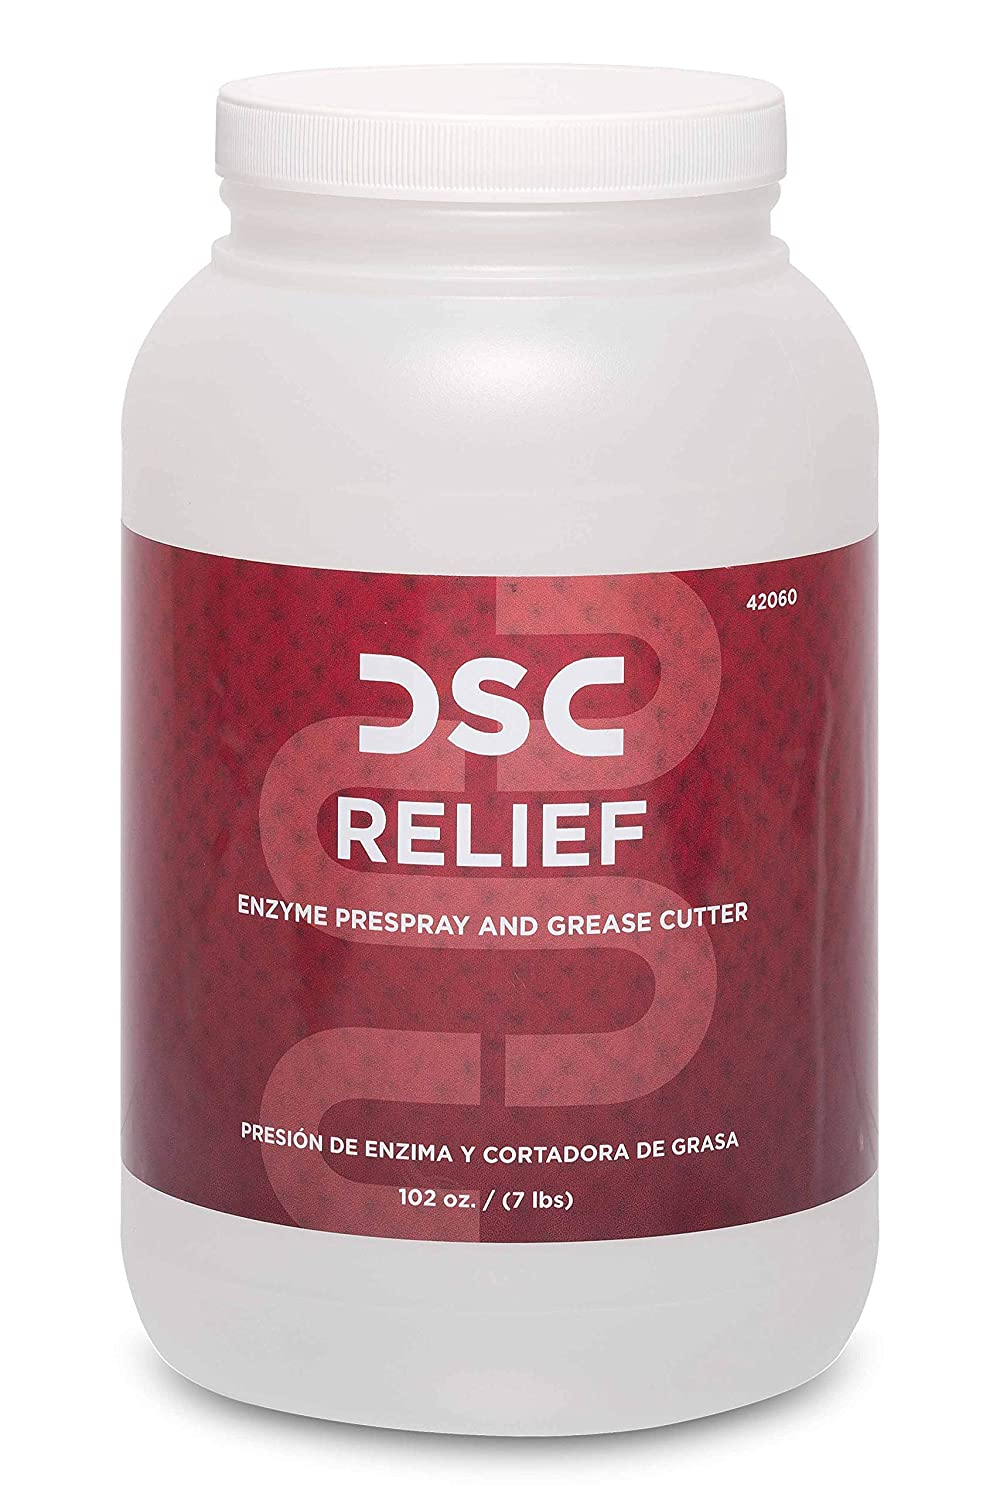 Amazon.com: DSC Relief - Powdered Enzyme Prespray and Grease Cutter ...